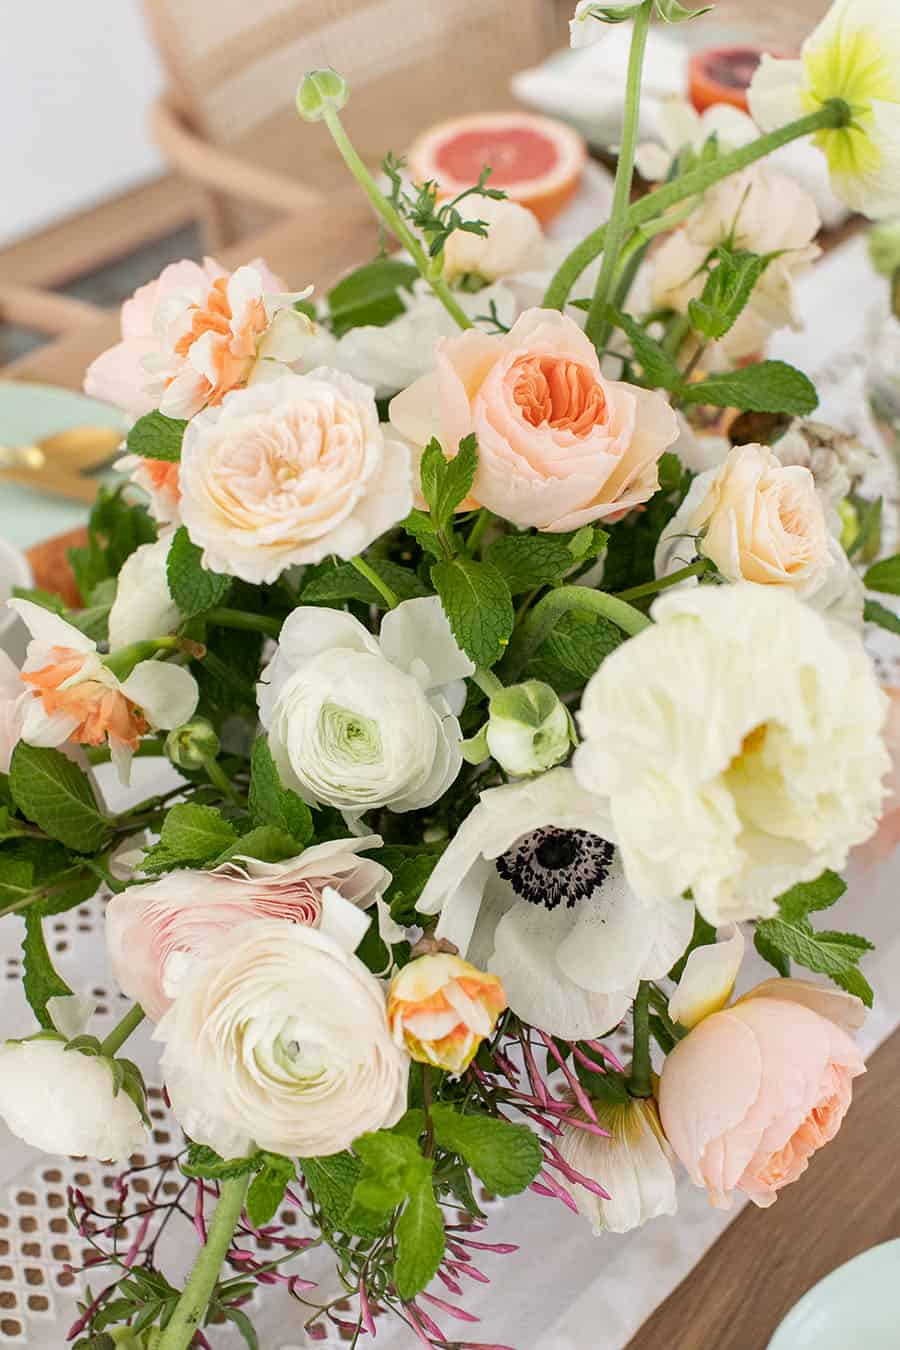 Flowers in a wooden table,